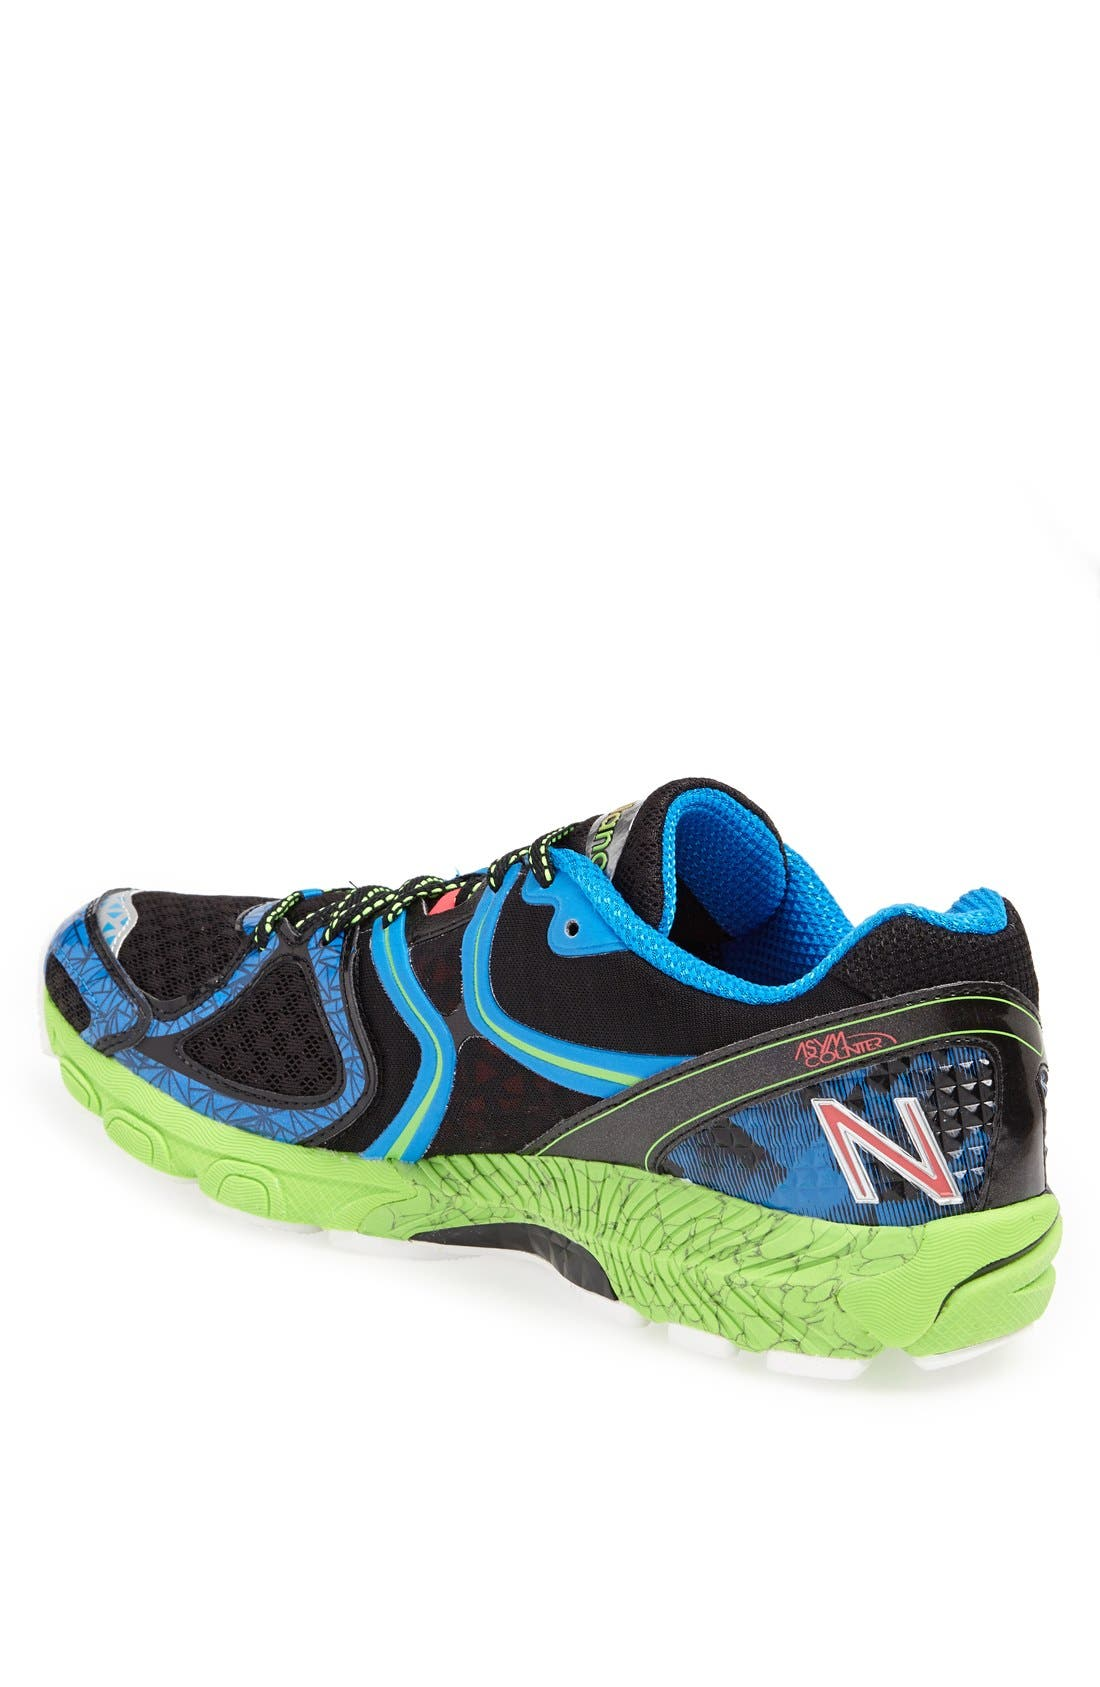 Alternate Image 2  - New Balance '1260v3' Running Shoe (Men)